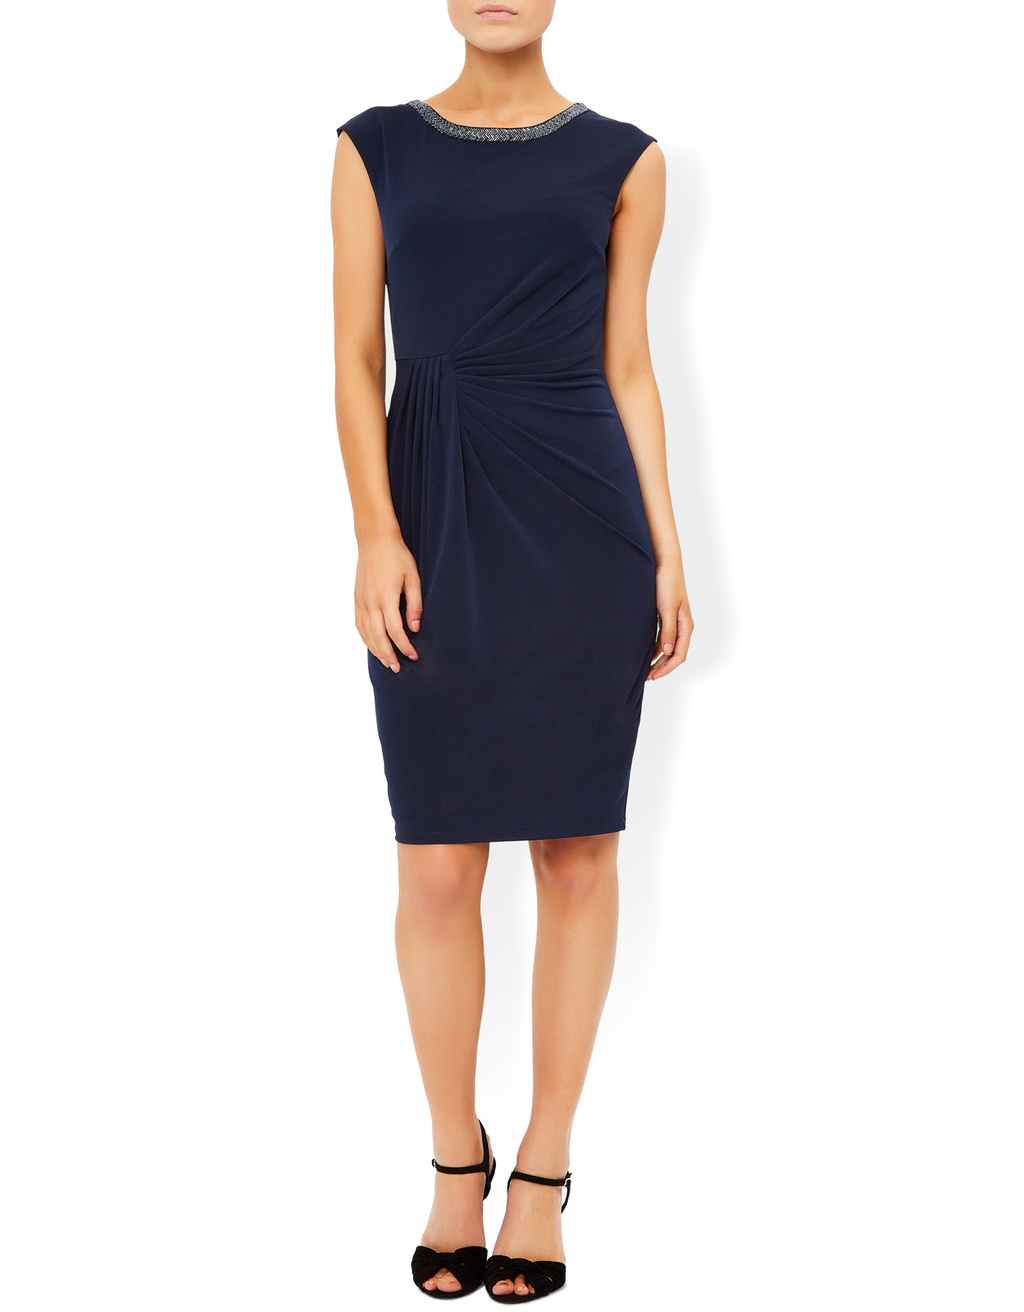 Brigita Embellished Neckline Dress - style: shift; sleeve style: capped; pattern: plain; waist detail: flattering waist detail; hip detail: draws attention to hips; predominant colour: navy; secondary colour: silver; occasions: evening, occasion; length: just above the knee; fit: body skimming; fibres: polyester/polyamide - stretch; neckline: crew; sleeve length: sleeveless; texture group: jersey - clingy; pattern type: fabric; embellishment: beading; season: s/s 2016; wardrobe: event